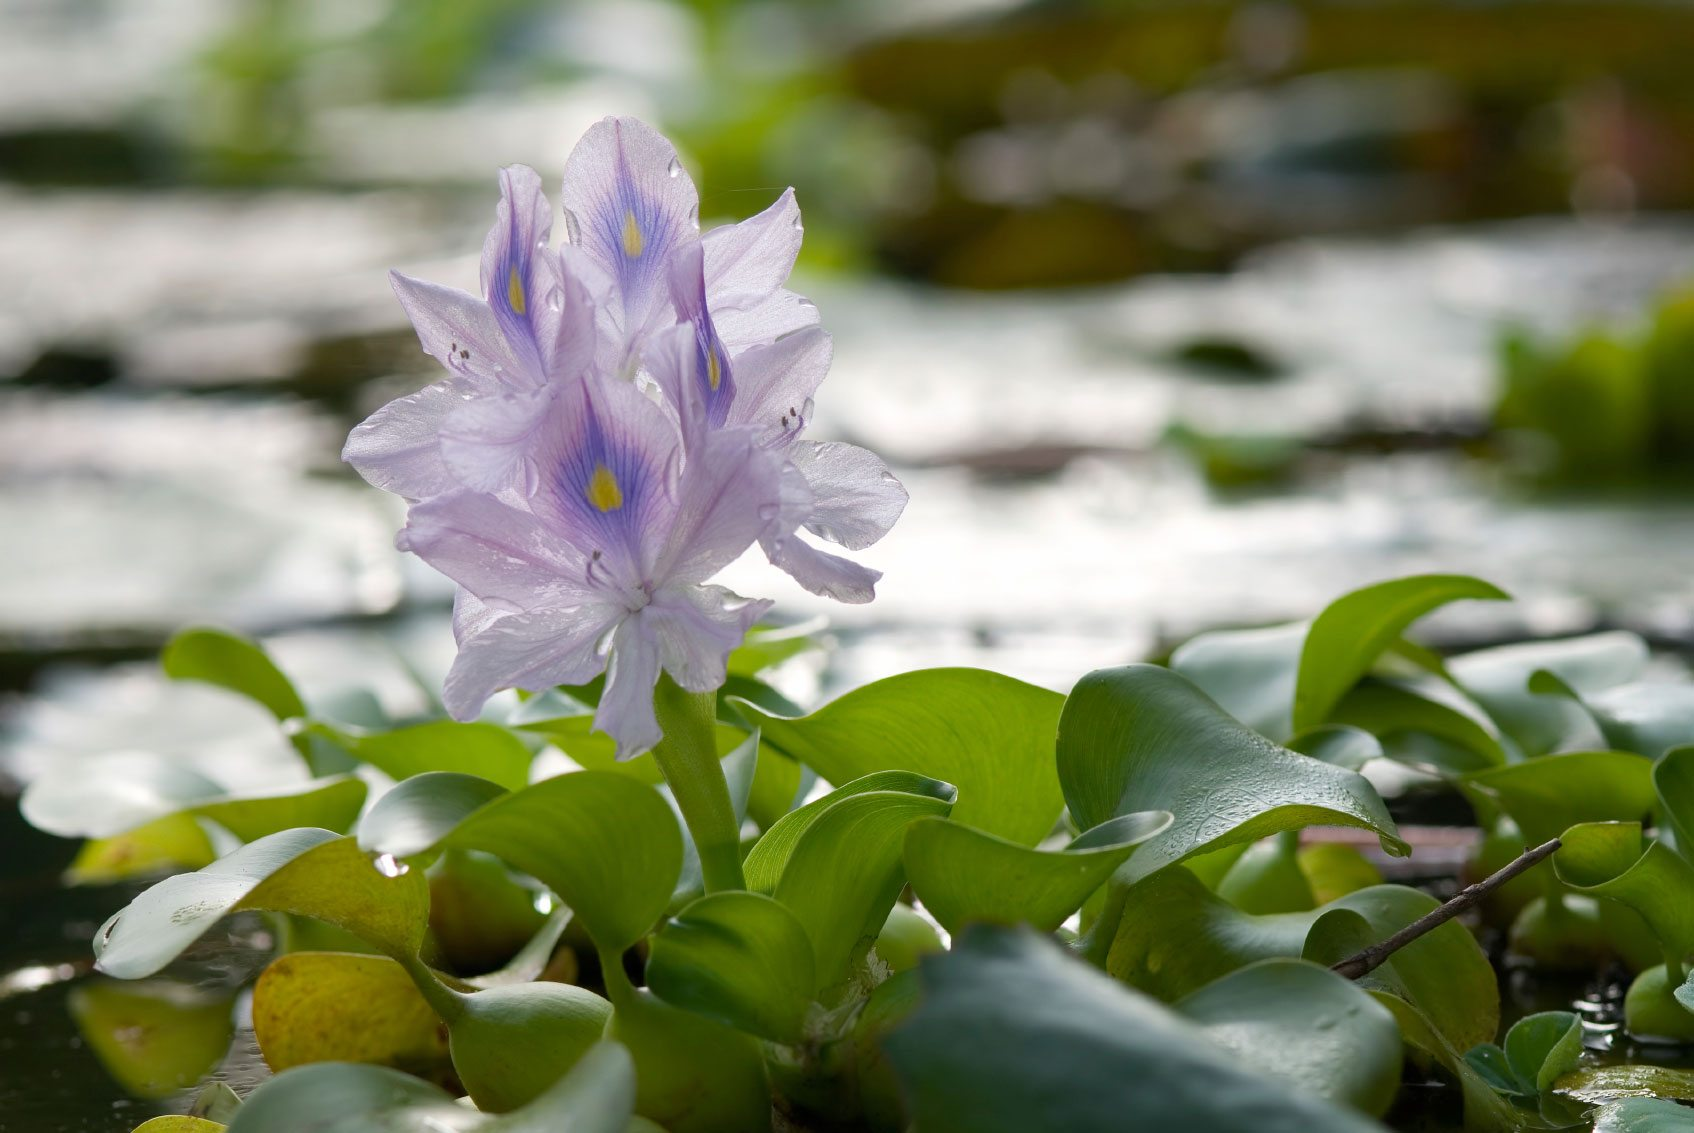 Water Hyacinth Care – How To Grow Water Hyacinth Plants